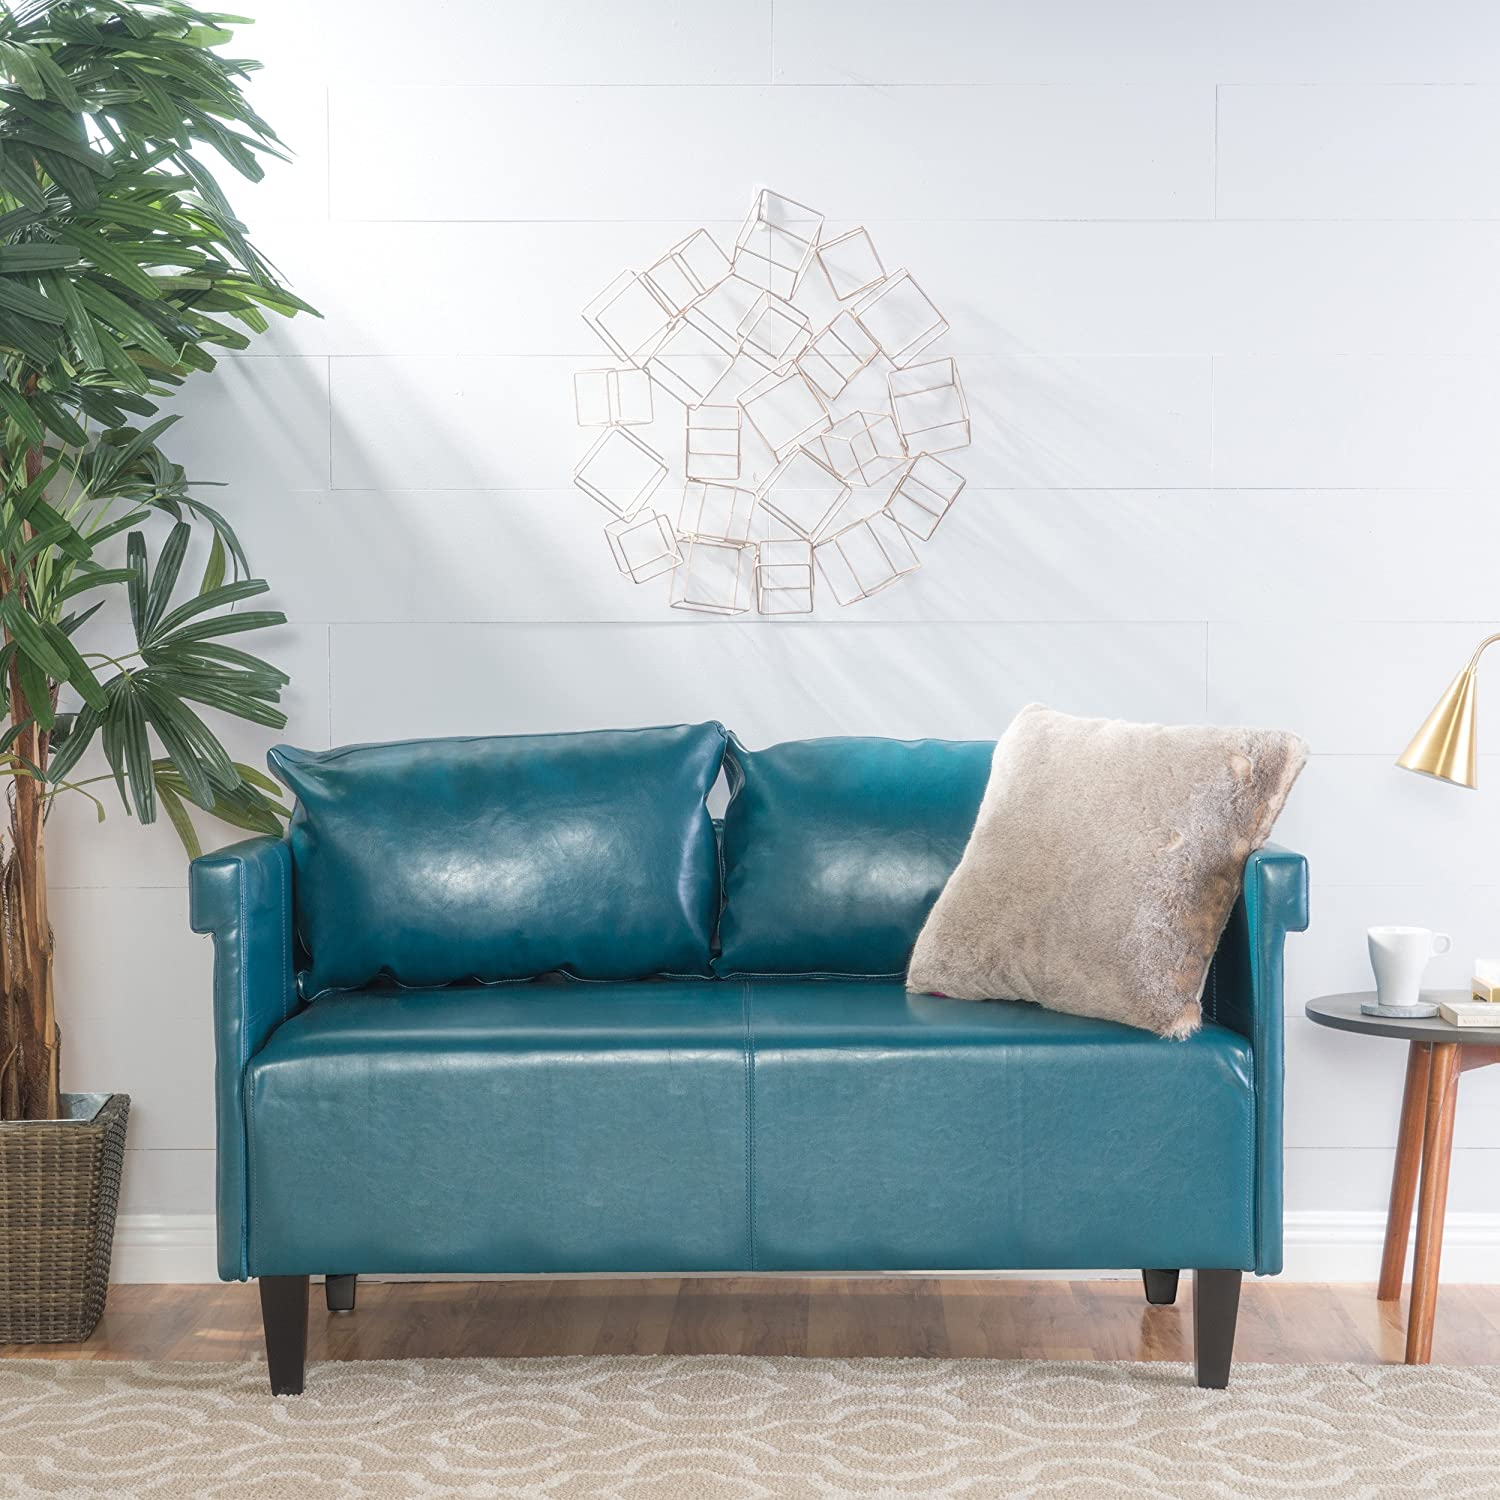 Awesome Christopher Knight Home Harbison Teal Leather Settee Ibusinesslaw Wood Chair Design Ideas Ibusinesslaworg